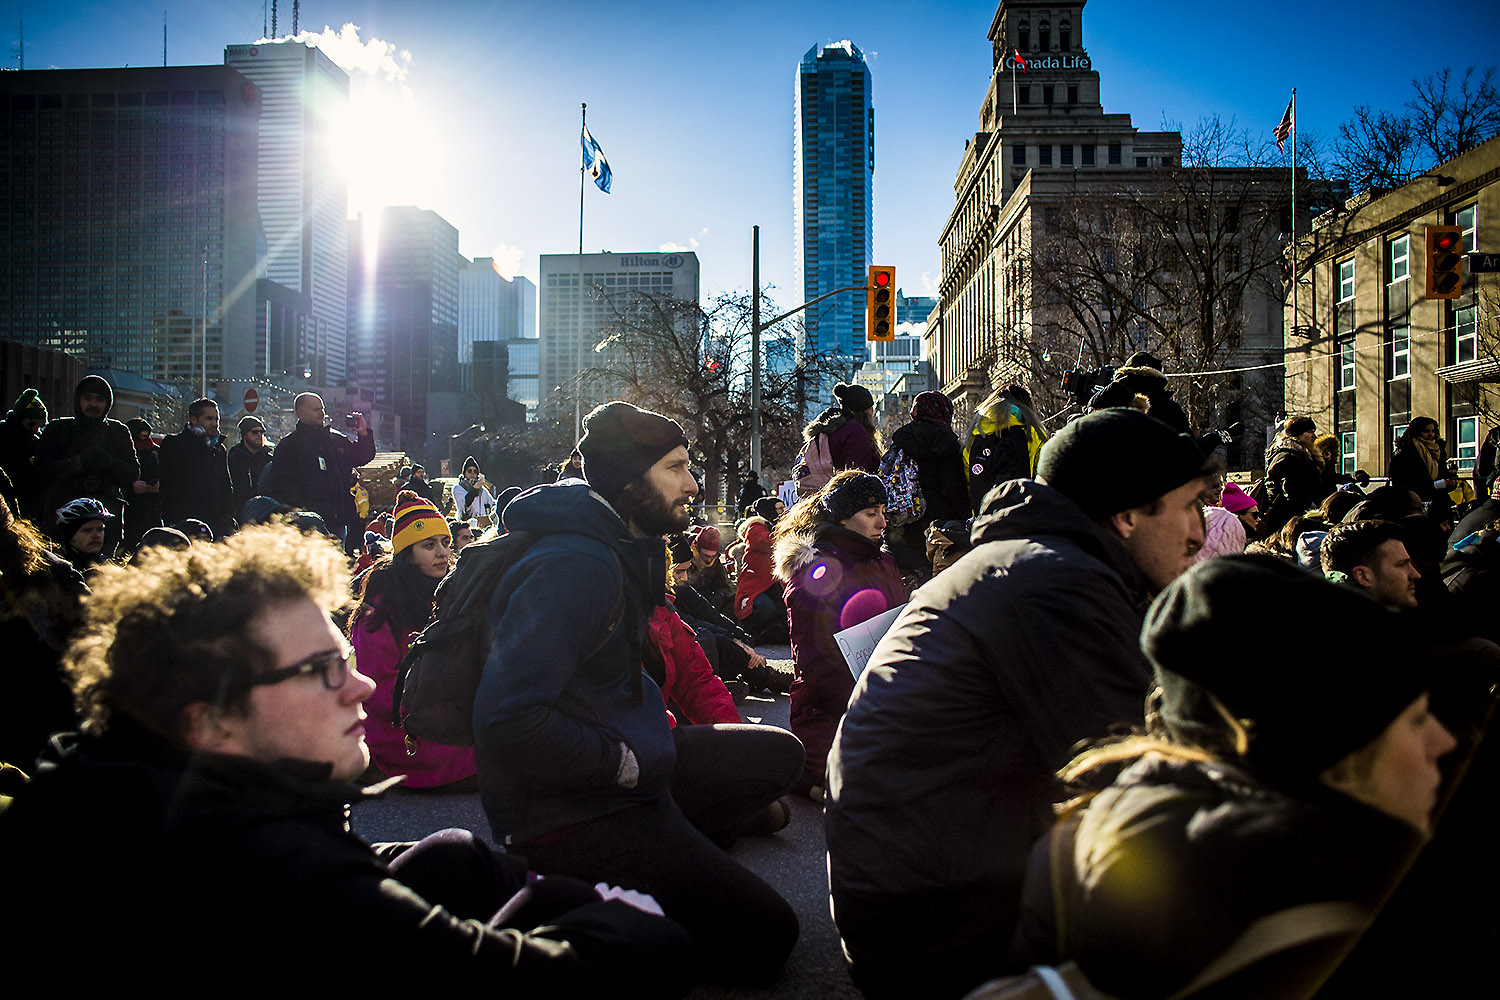 Hundreds of people braved freezing temperatures and gathered in downtown Toronto for a demonstration against President Trump's travel ban on citizens of seven Muslim countries, Monday, January 30, 2017.